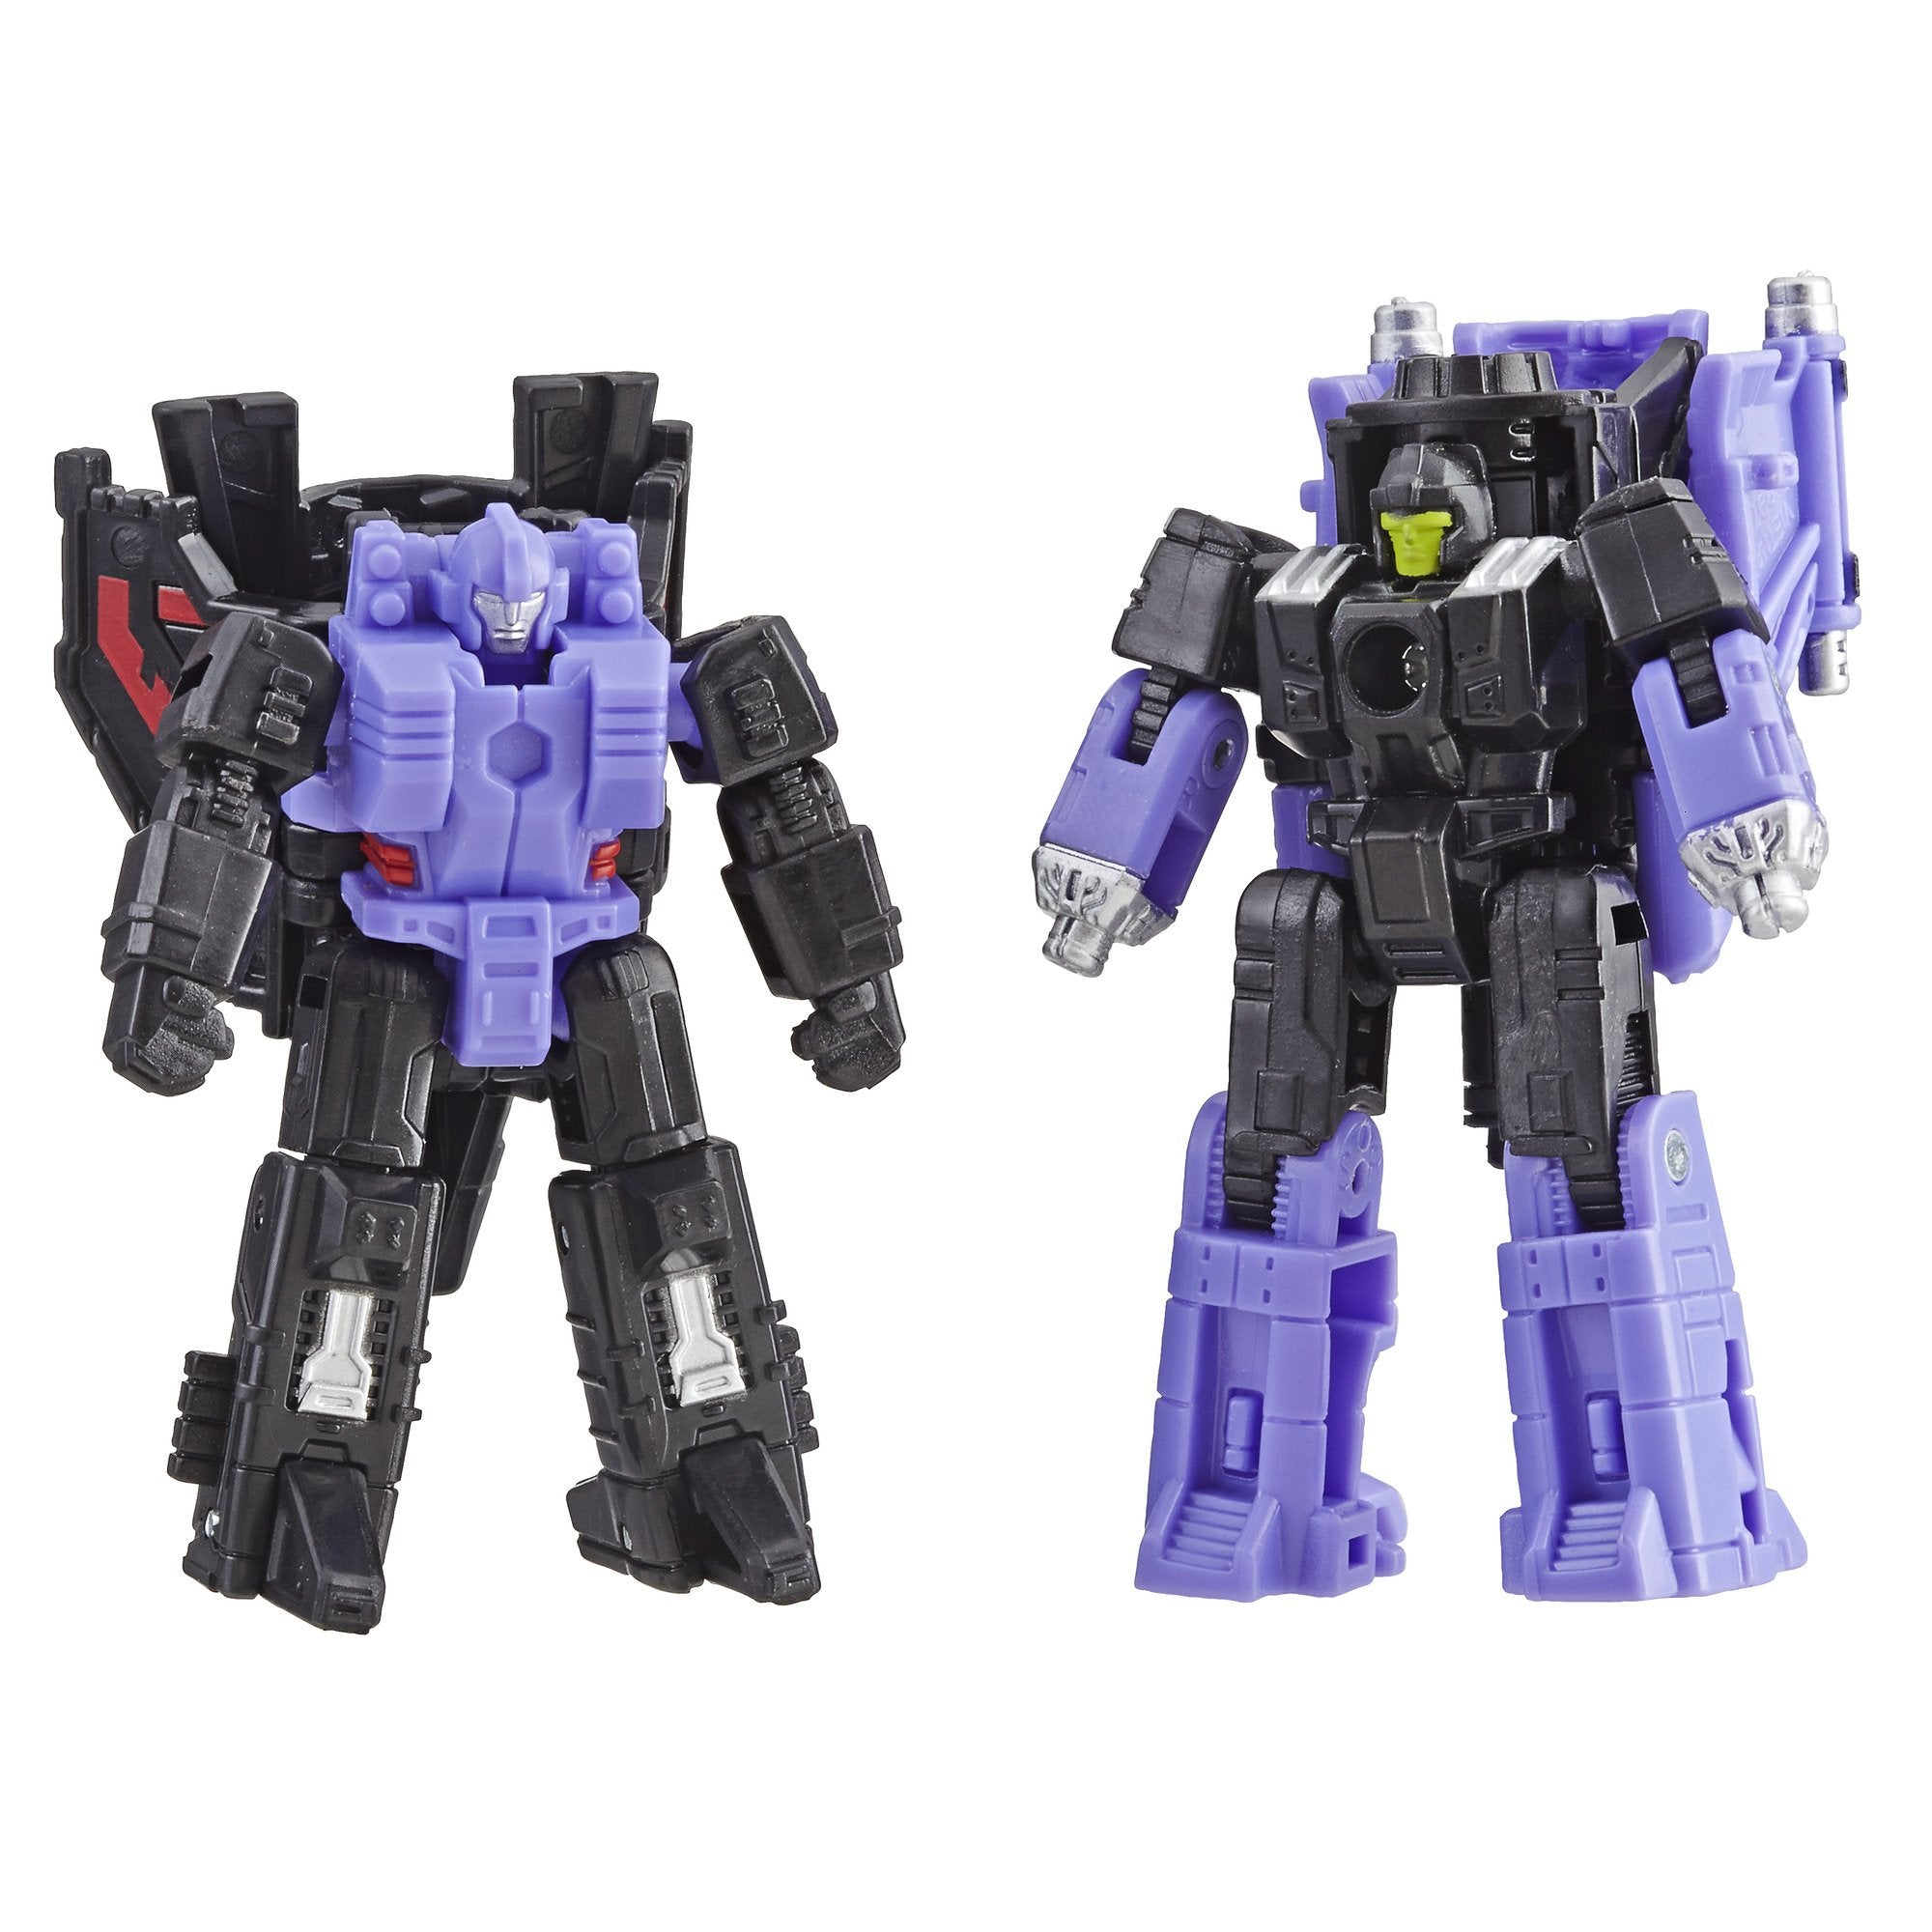 Transformers Generations War for Cybertron Siege Micromaster WFC-S5 Decepticon